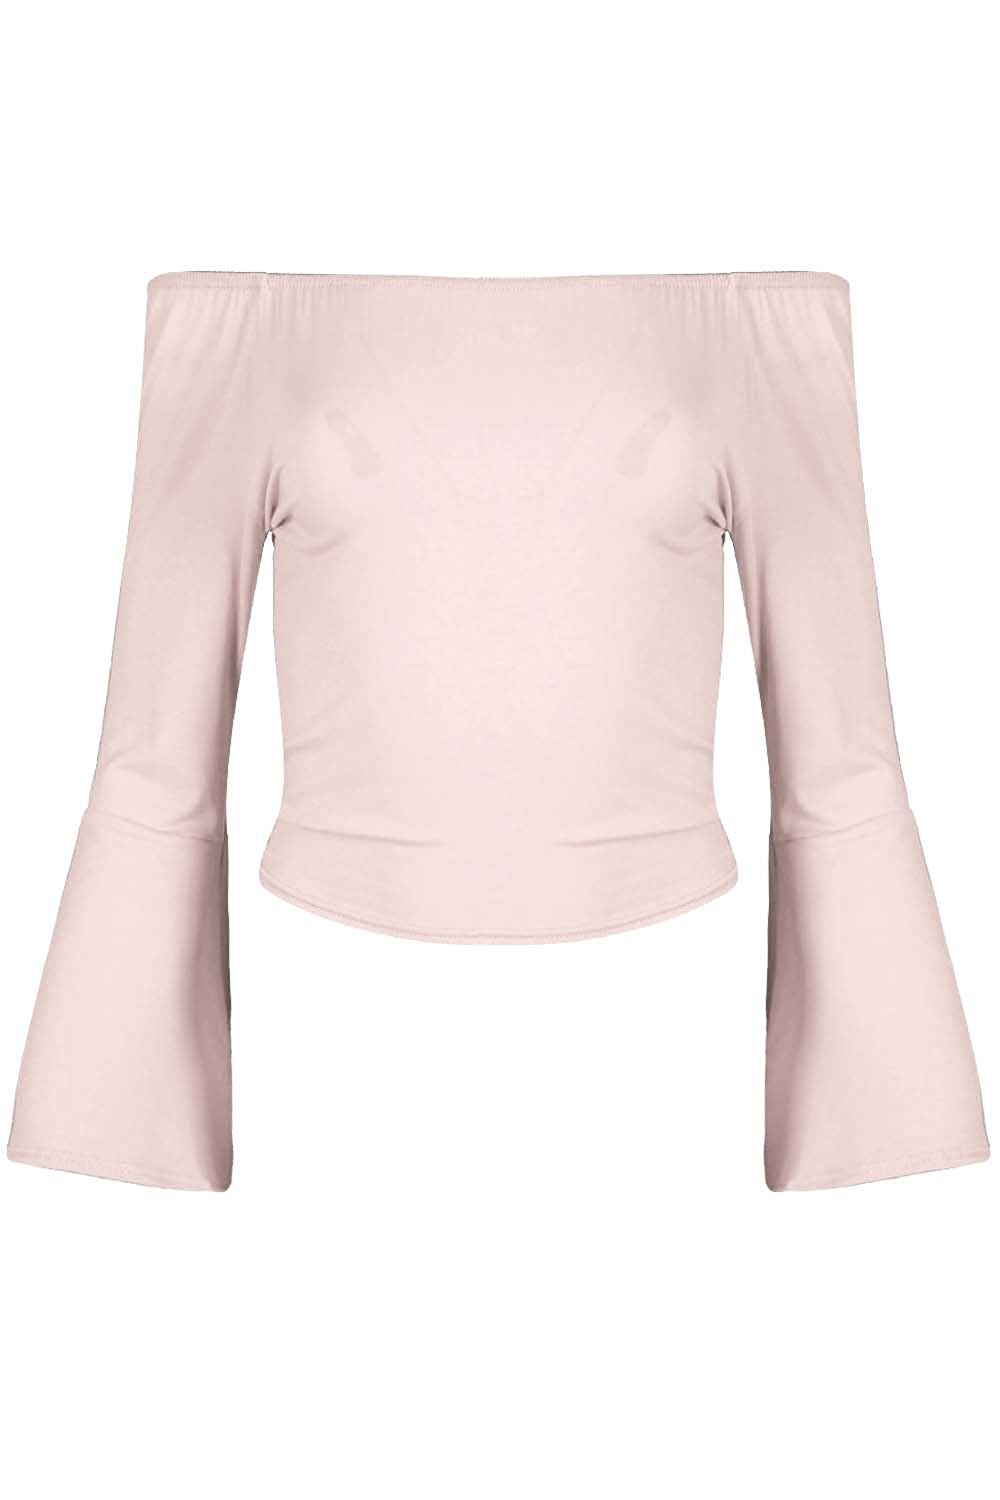 Be Jealous Womens Plain Off Shoulder Peplum Bell Sleeve Casual Bardot Crop Top at Amazon Women's Clothing store: